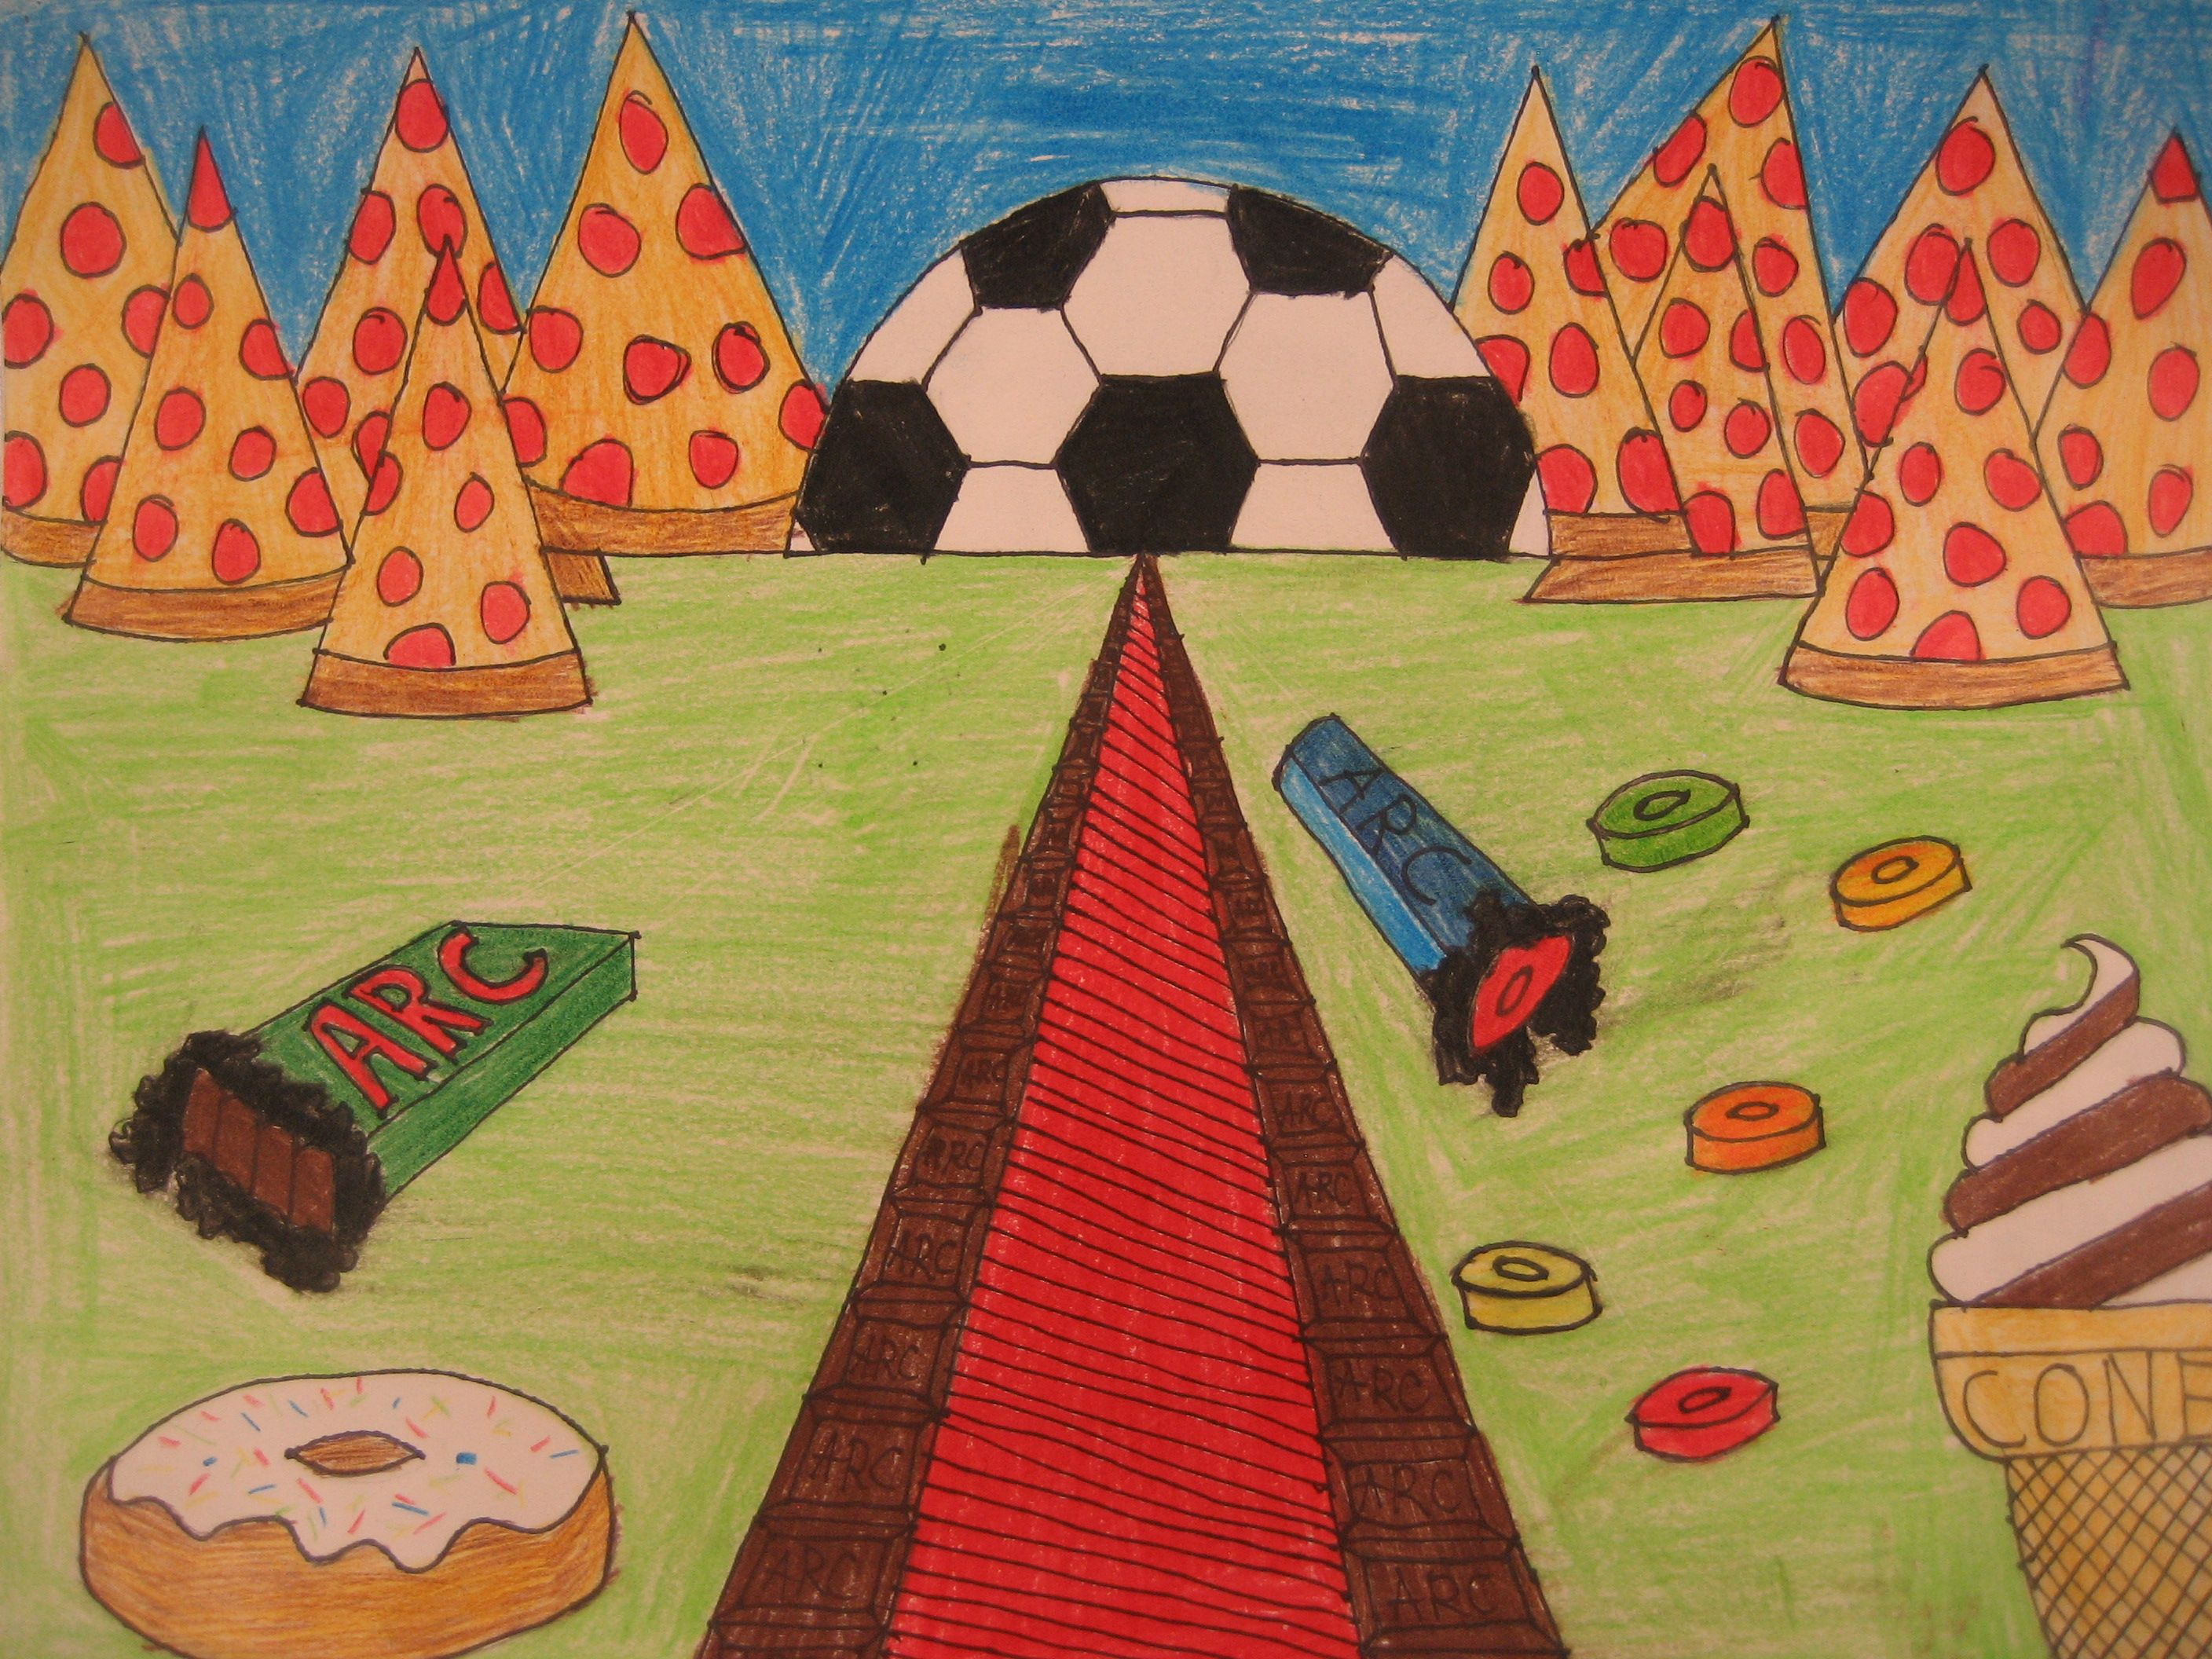 Fantasy Fun One Point Perspective Landscape My Middle School